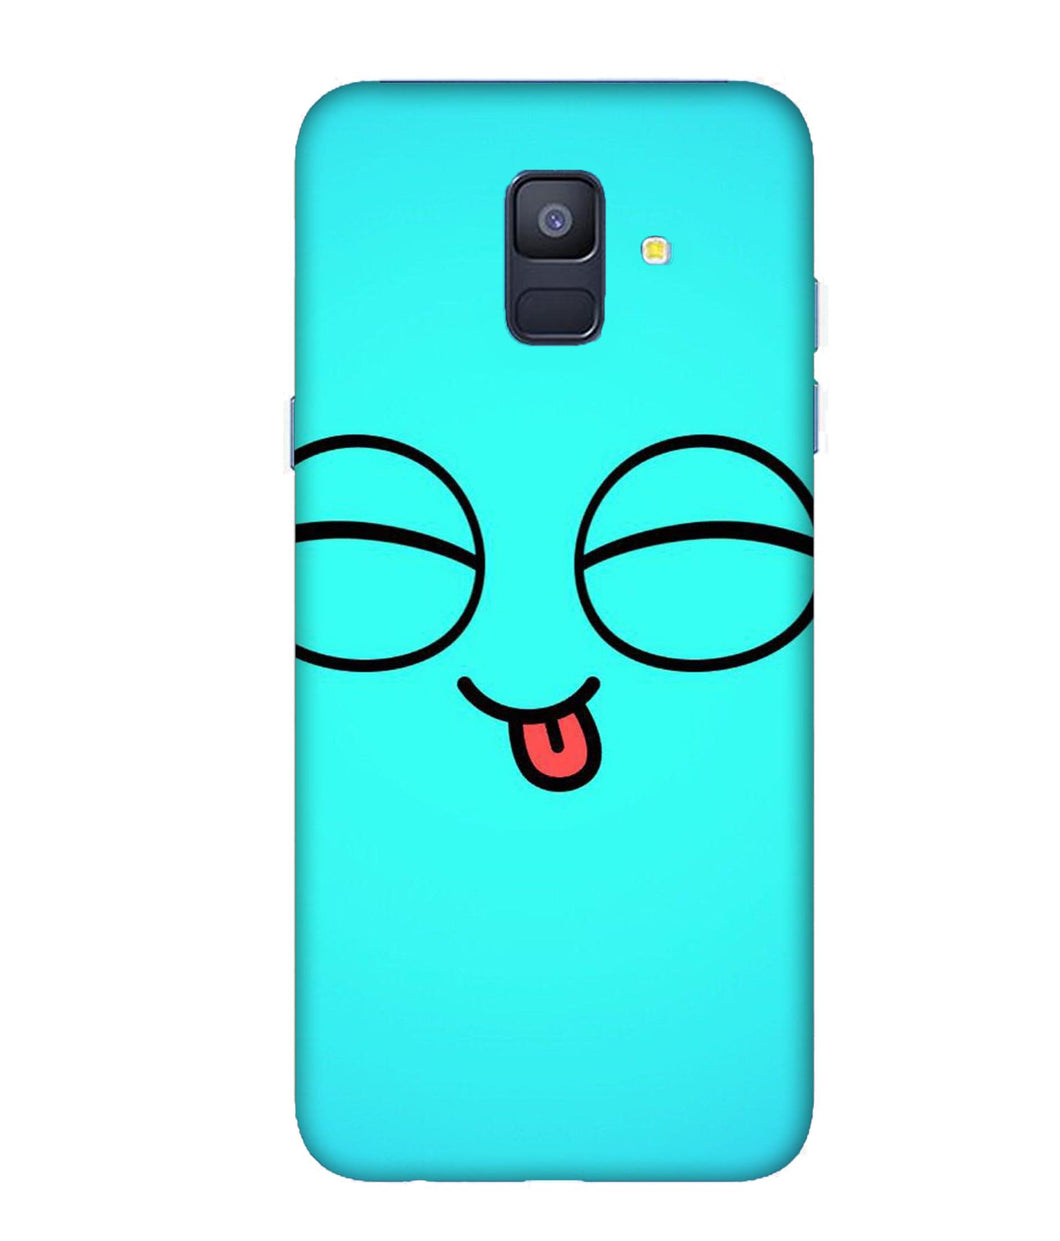 Samsung Galaxy A6 Cute Mobile cover